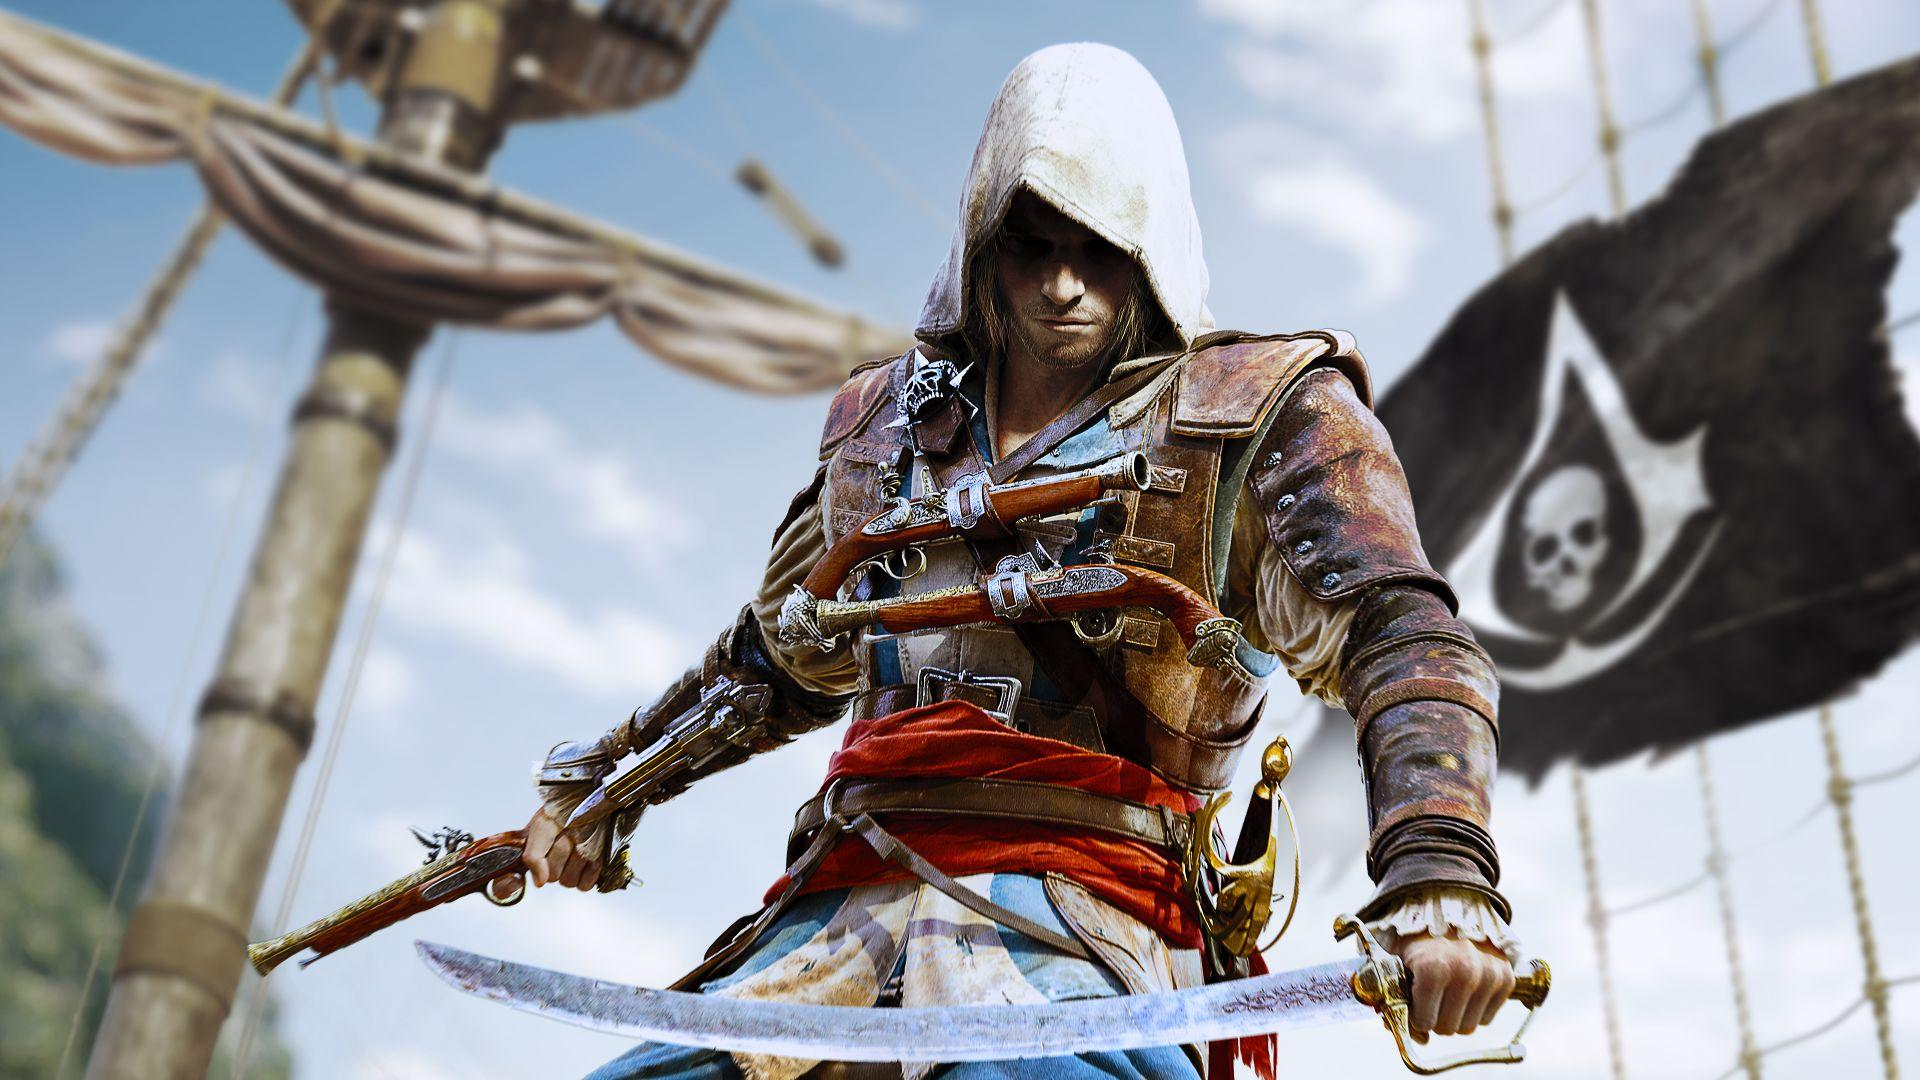 Via https://data1.origin.com/content/dam/originx/web/app/games/assassins-creed/assassins-creed-iv-black-flag/assassins-creed-iv-black-flag-standard-edition_pdp_3840x2160_en_WW.jpg